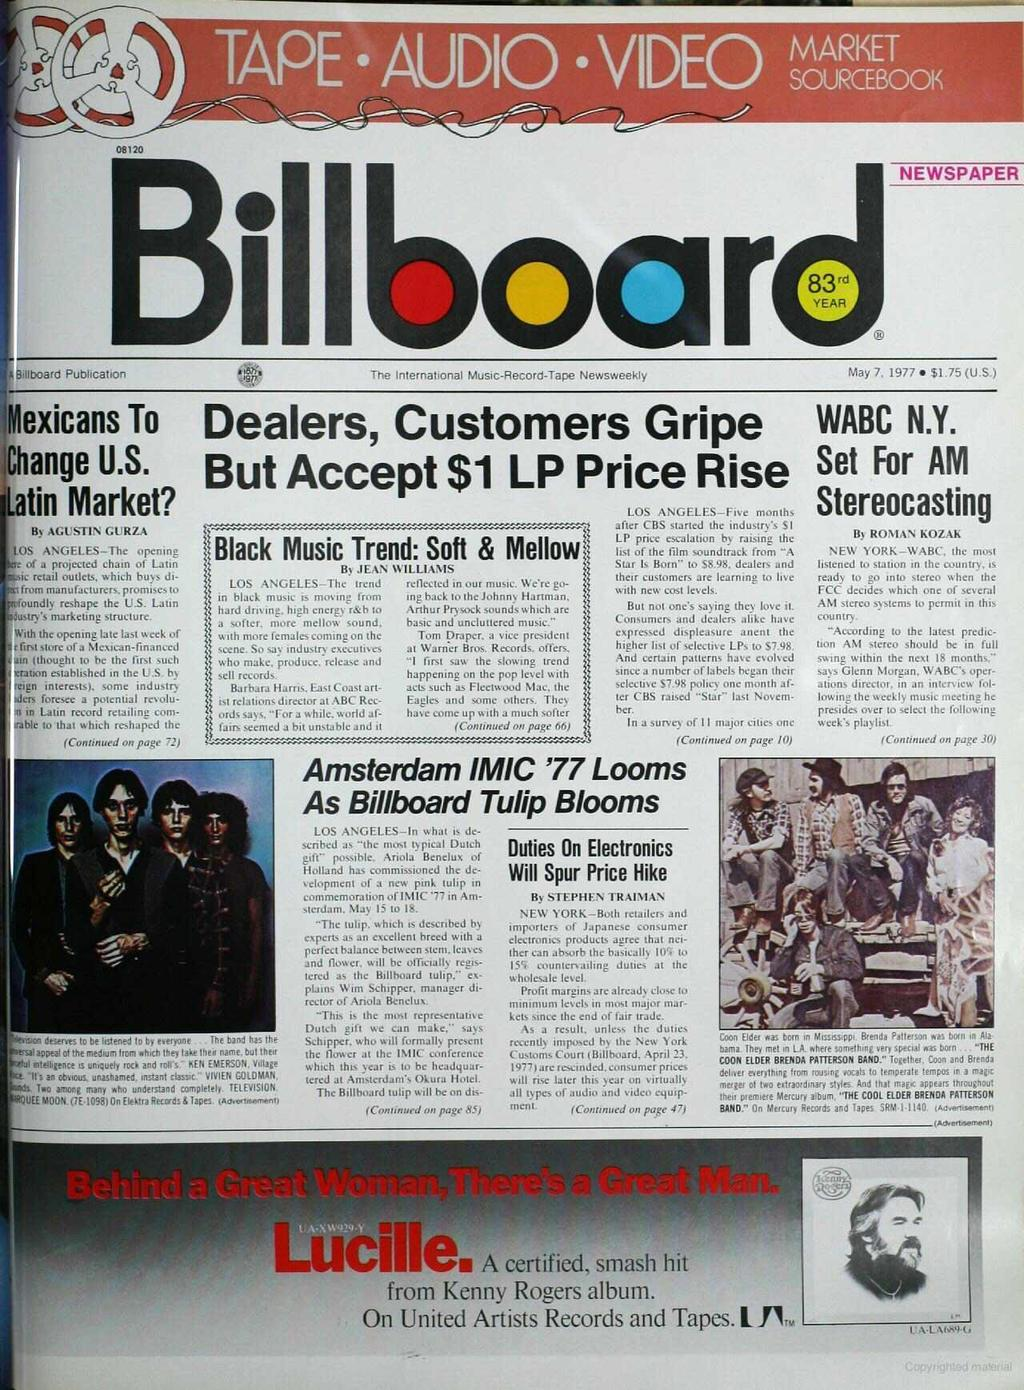 E AUDIOS VIDEO SOÚRCEBOOIt O820 NEWSPAPER Billboard Publication!! The International Music- Record -Tape Newsweekly May 7. 977 $.75 (U.S.) 'Mexicans To Change U.S. afin Market?